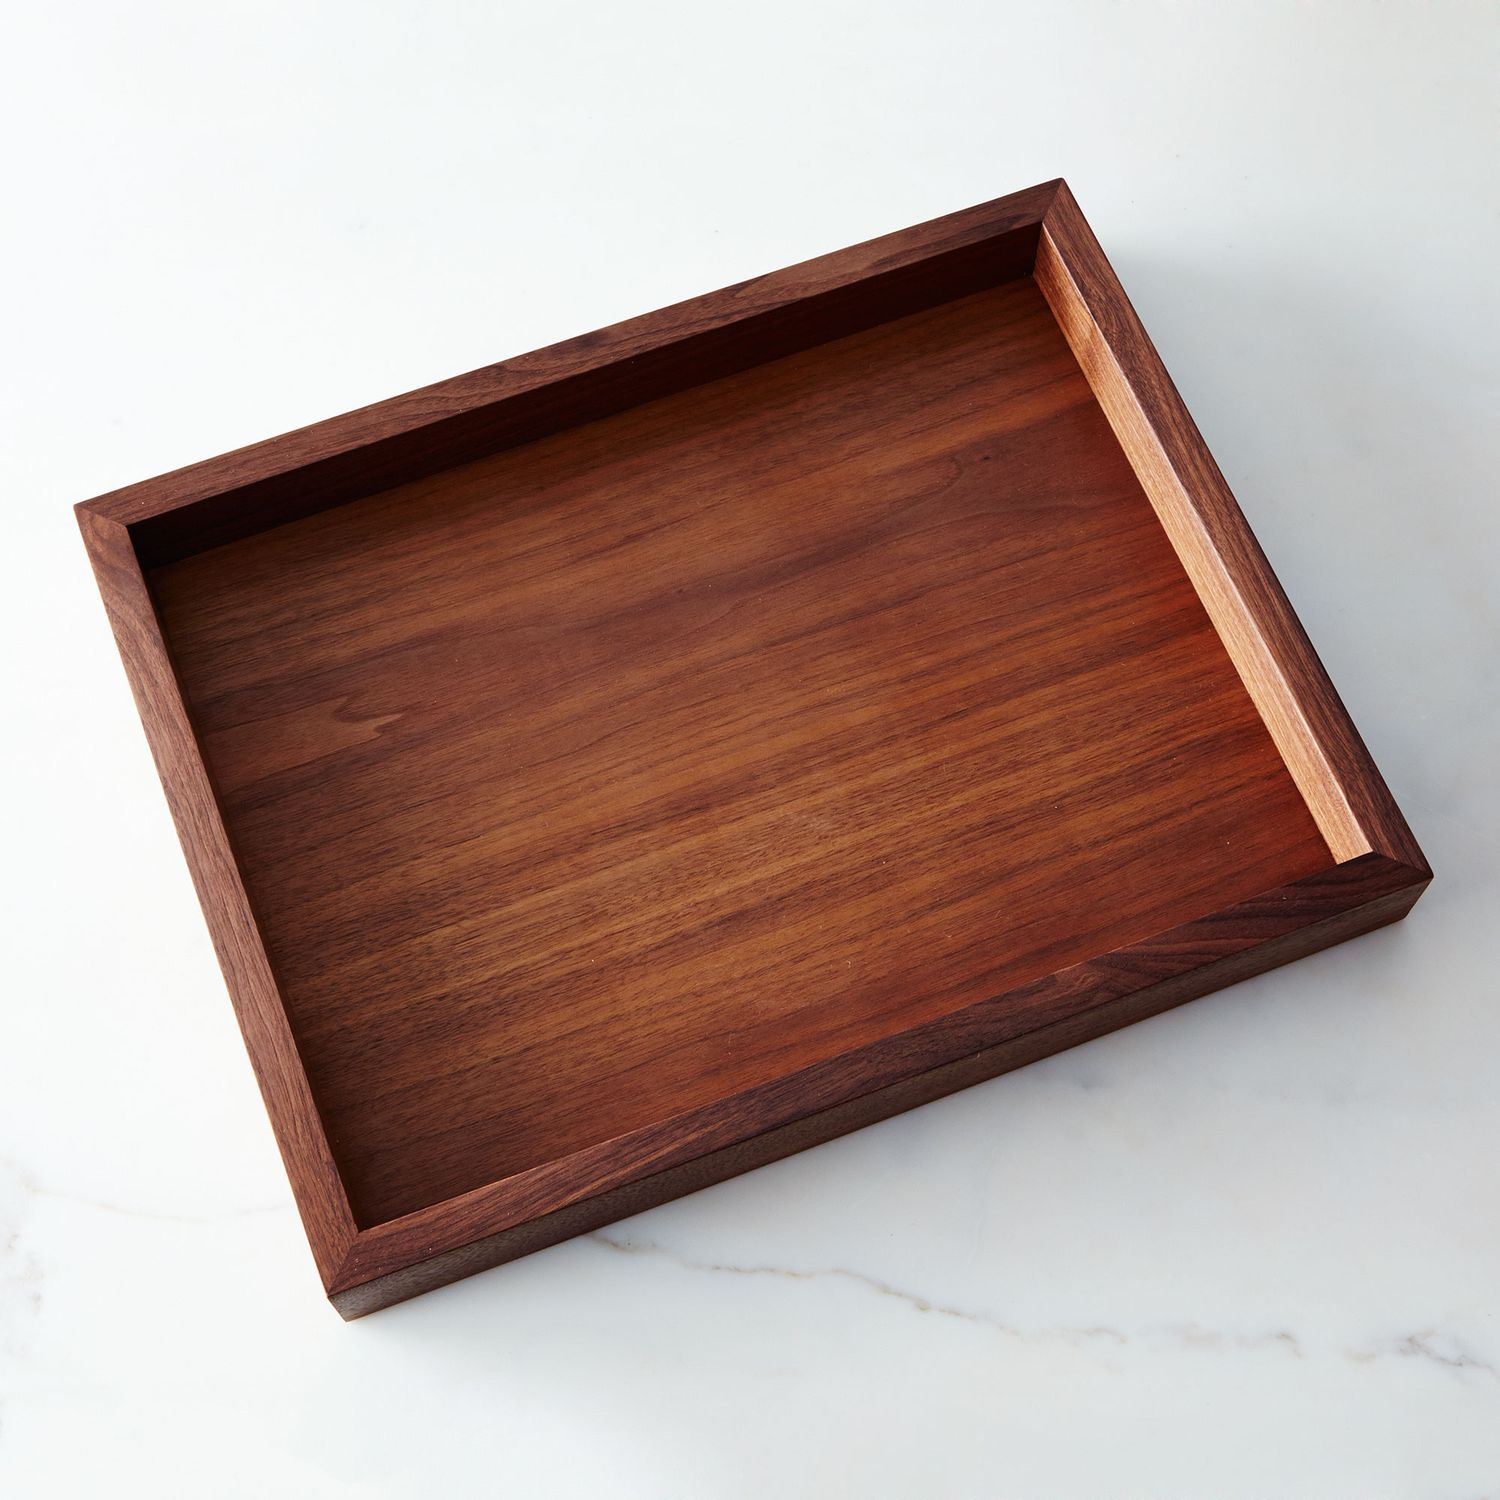 Walnut serving tray on food52 for Table 52 cards 2014